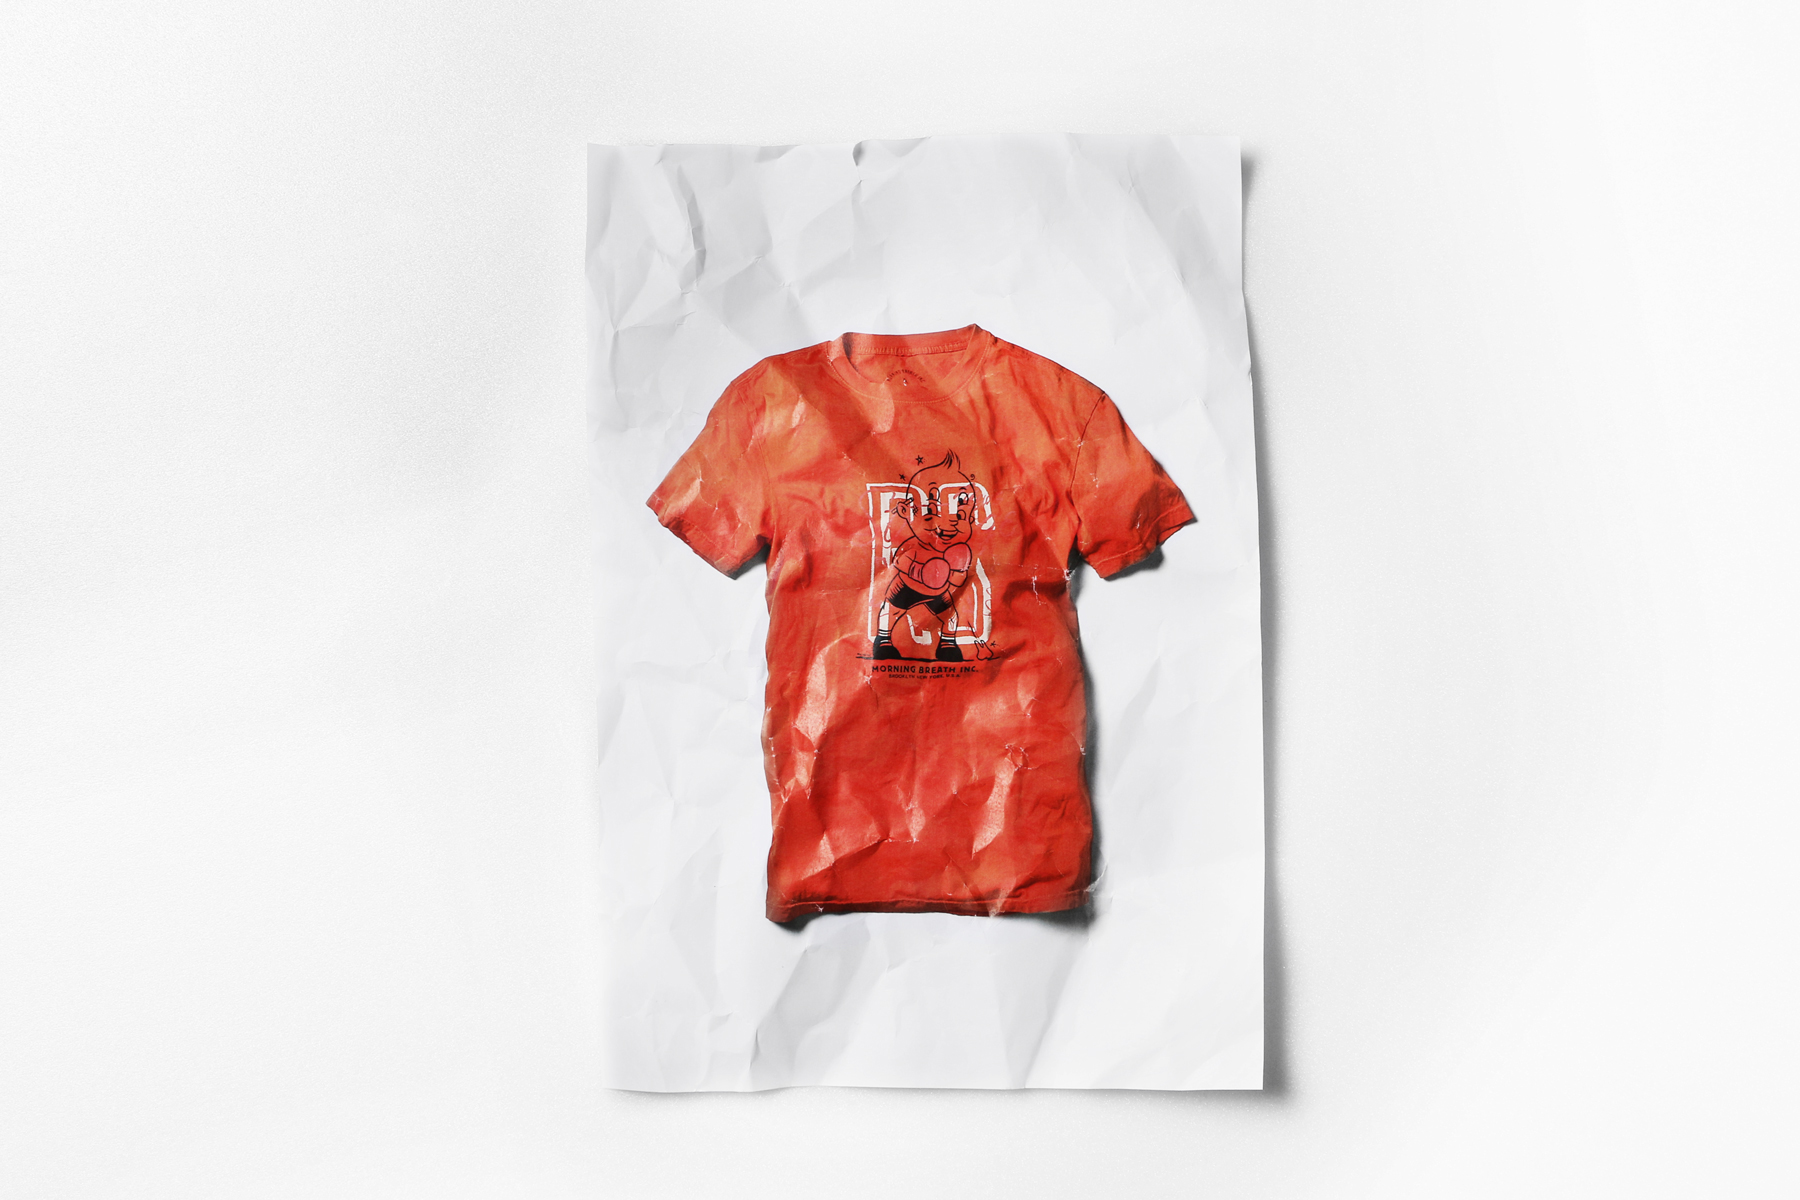 Morning Breath Inc. x Altamont T-shirts